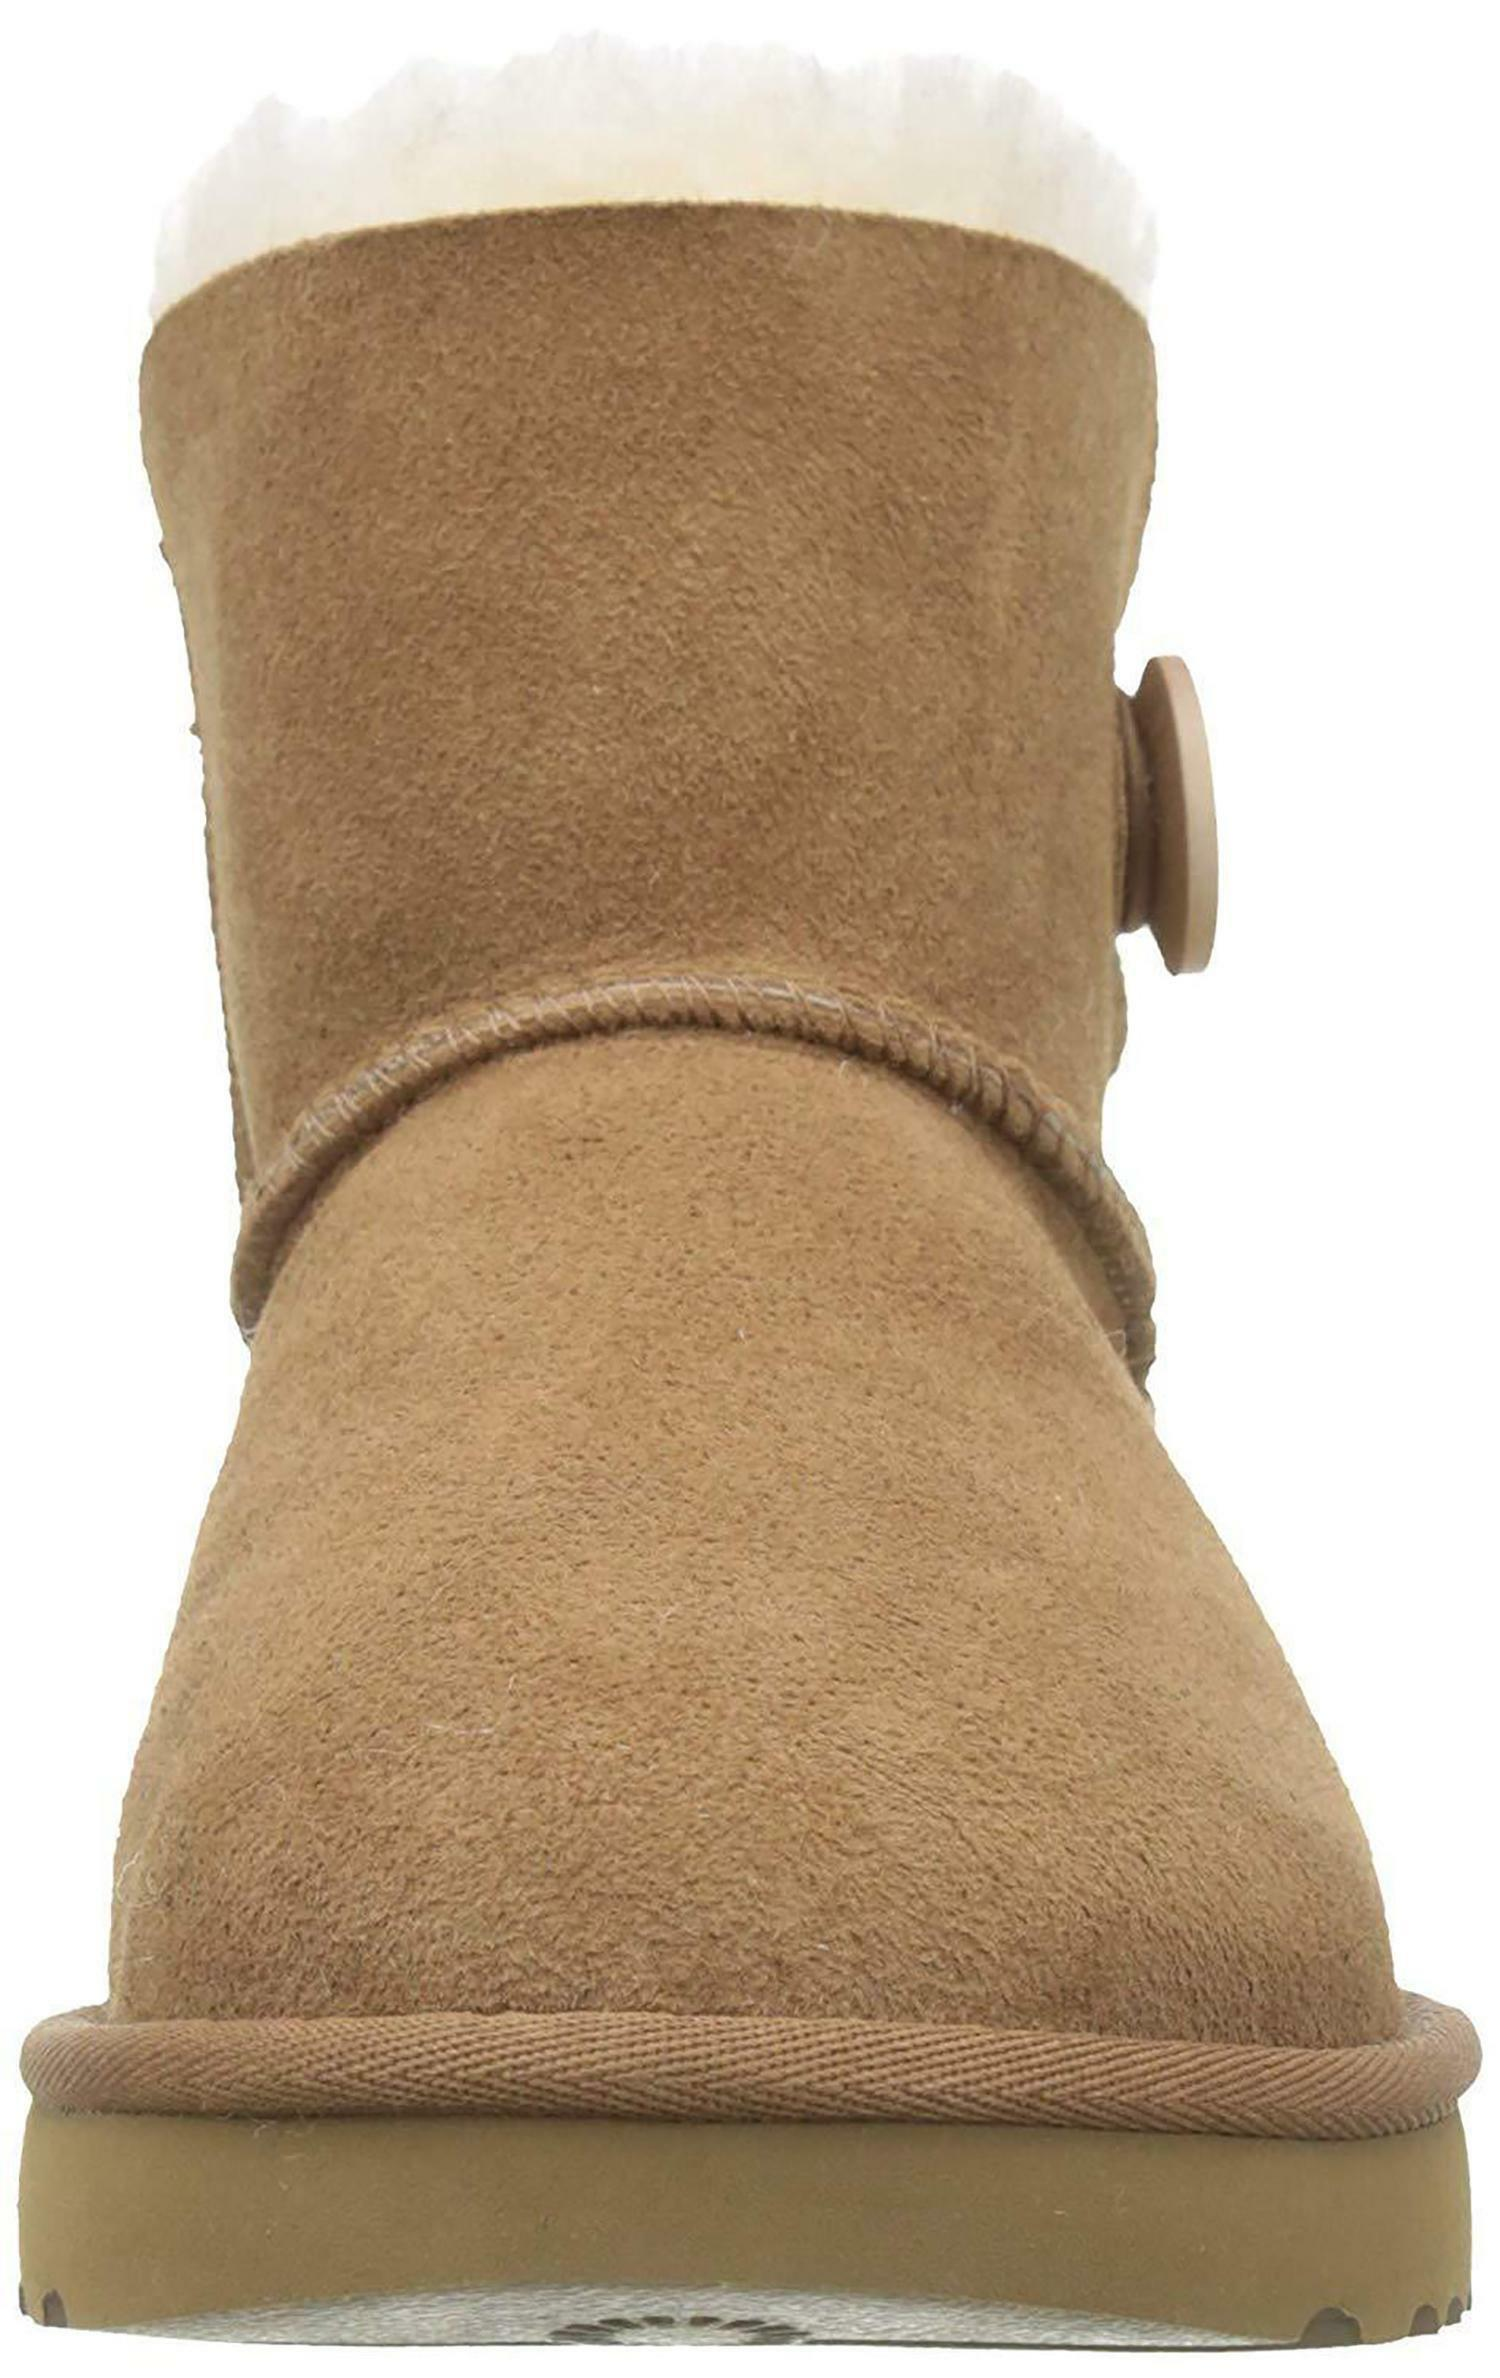 ugg ugg mini bailey button ii stivali donna marroni